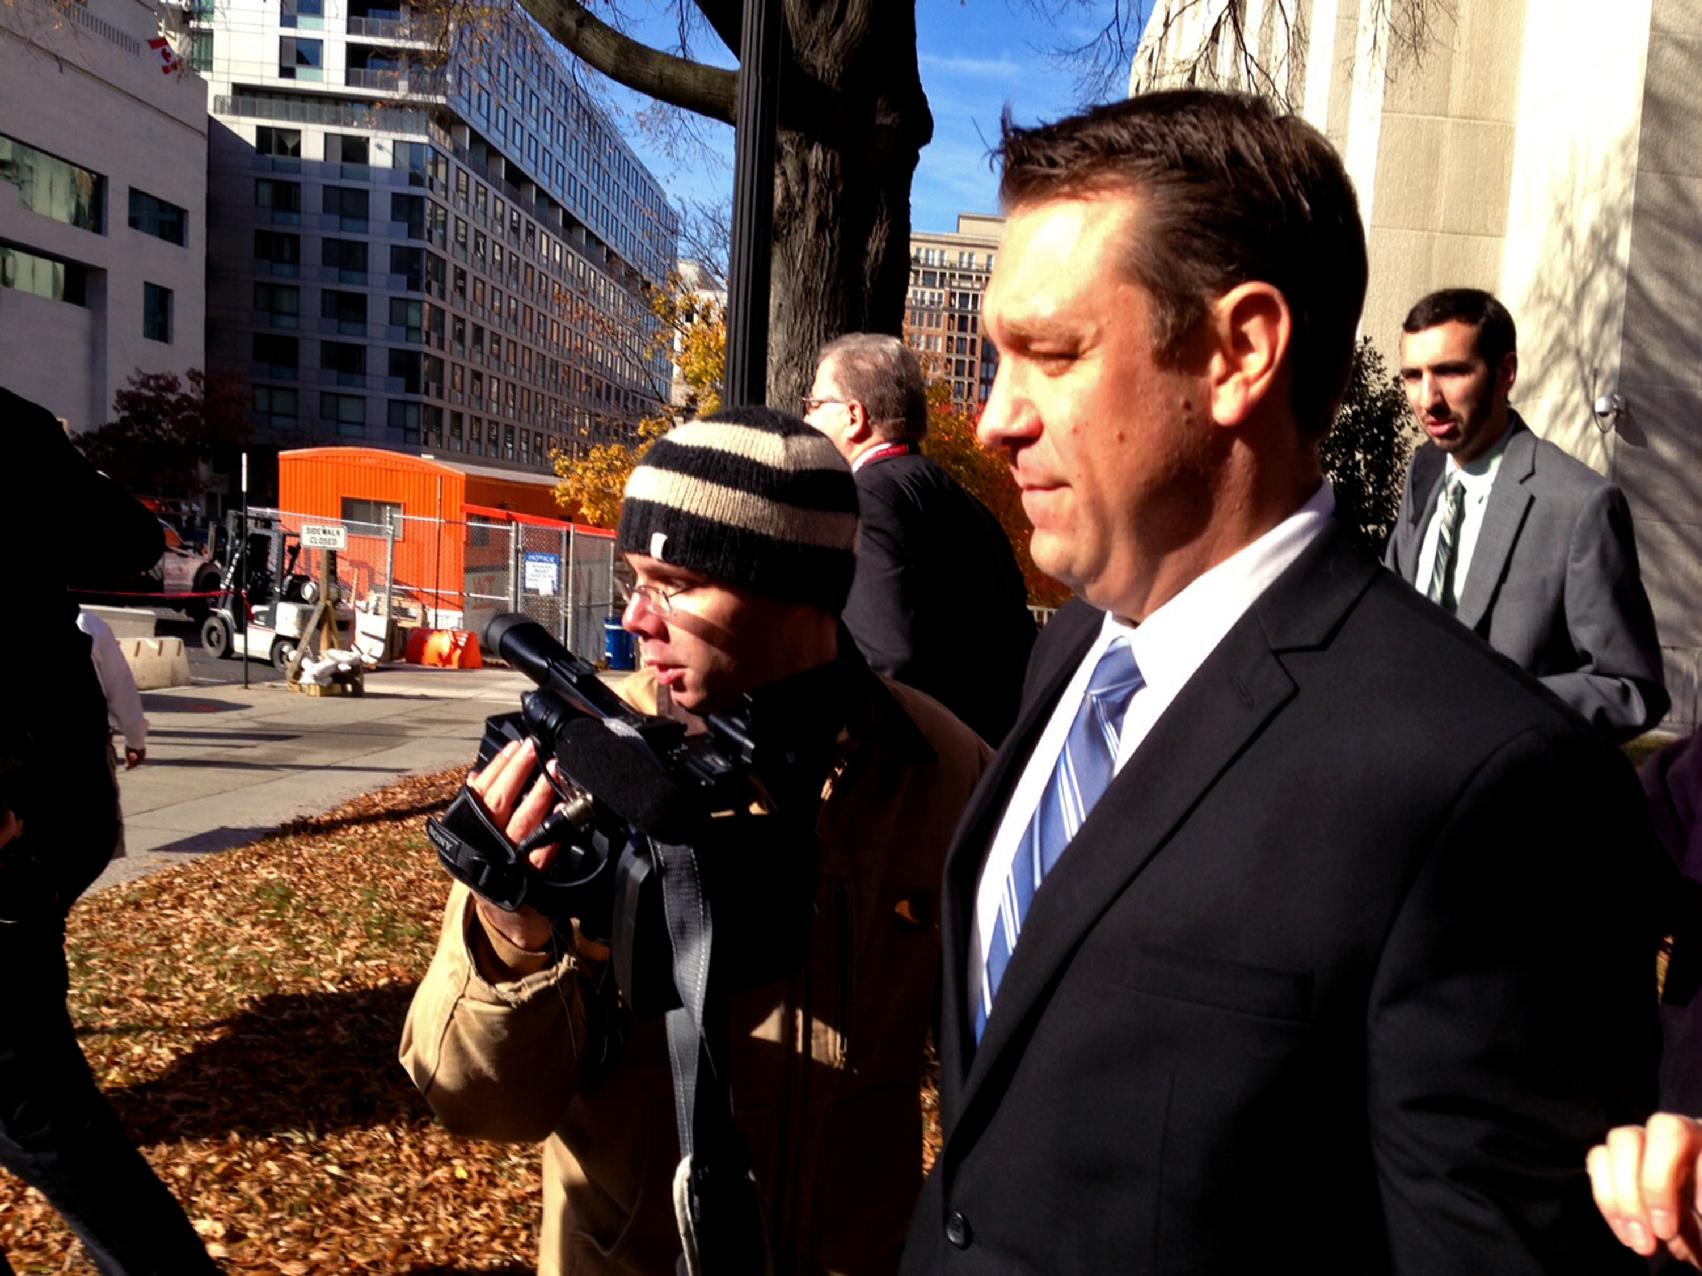 """This photo taken with a cellphone shows Rep. Henry """"Trey"""" Radel, R-Fla. leaving court in Washington, Wednesday, Nov. 20, 2013, leaving court after pleading guilty to a misdemeanor charge of cocaine possession and was sentenced to a year's probation. (AP Photo/Jessica Gresko)"""